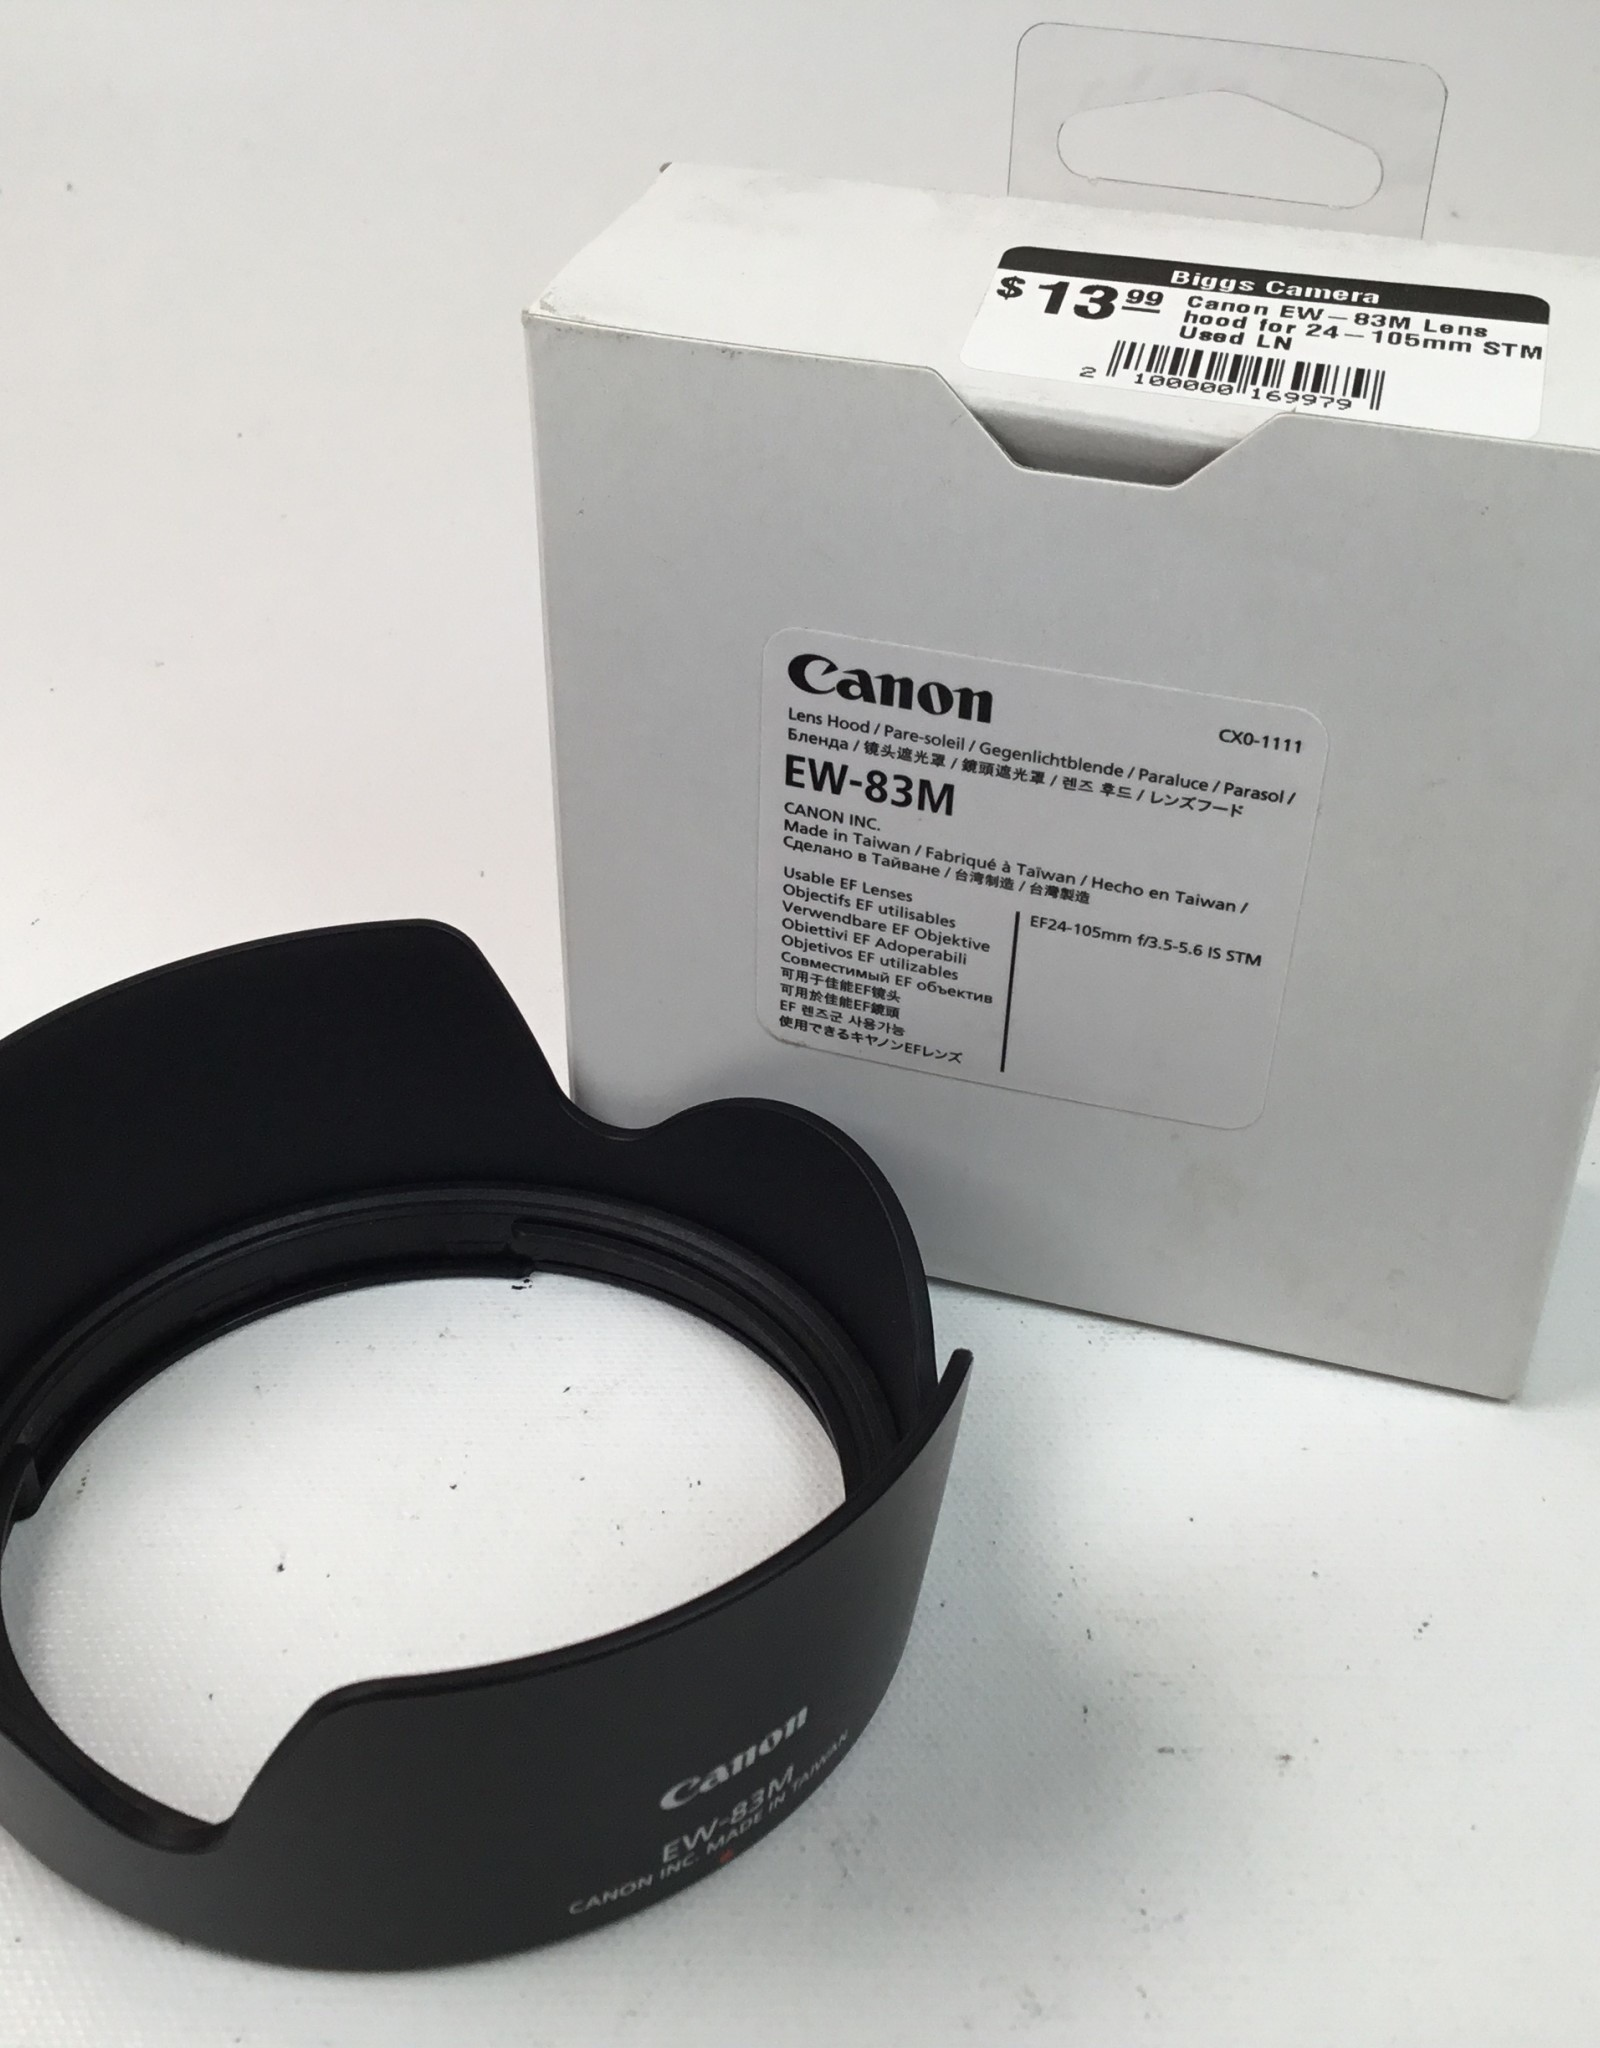 CANON Canon EW-83M Lens hood for 24-105mm STM Used LN